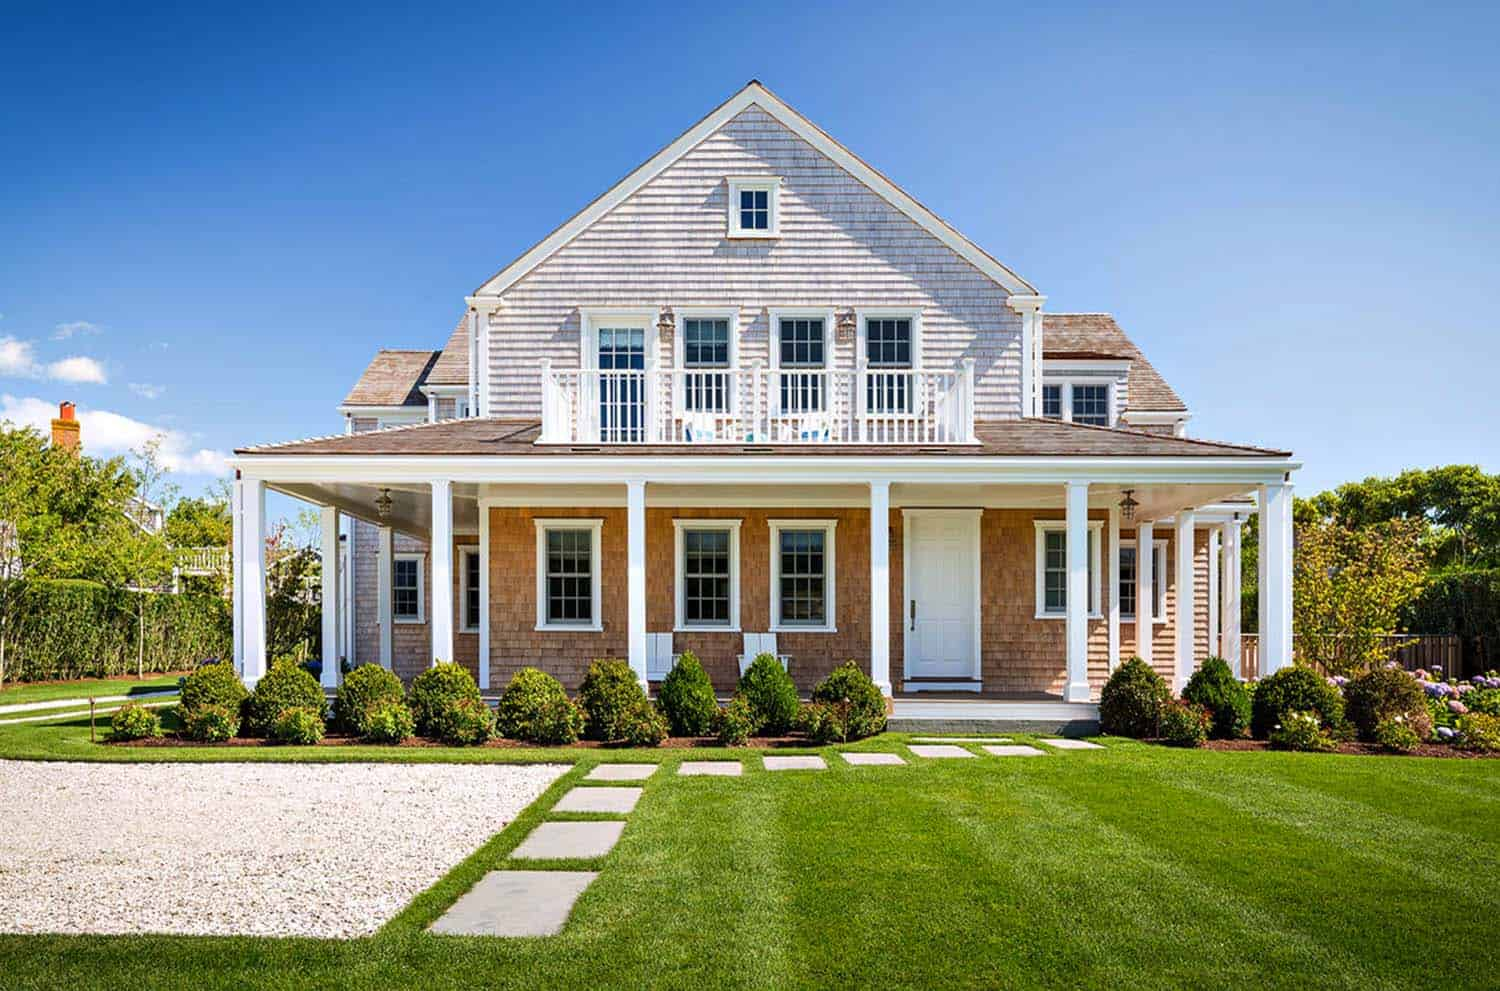 Shingle style house with beach chic interiors on nantucket for Nantucket shingle style